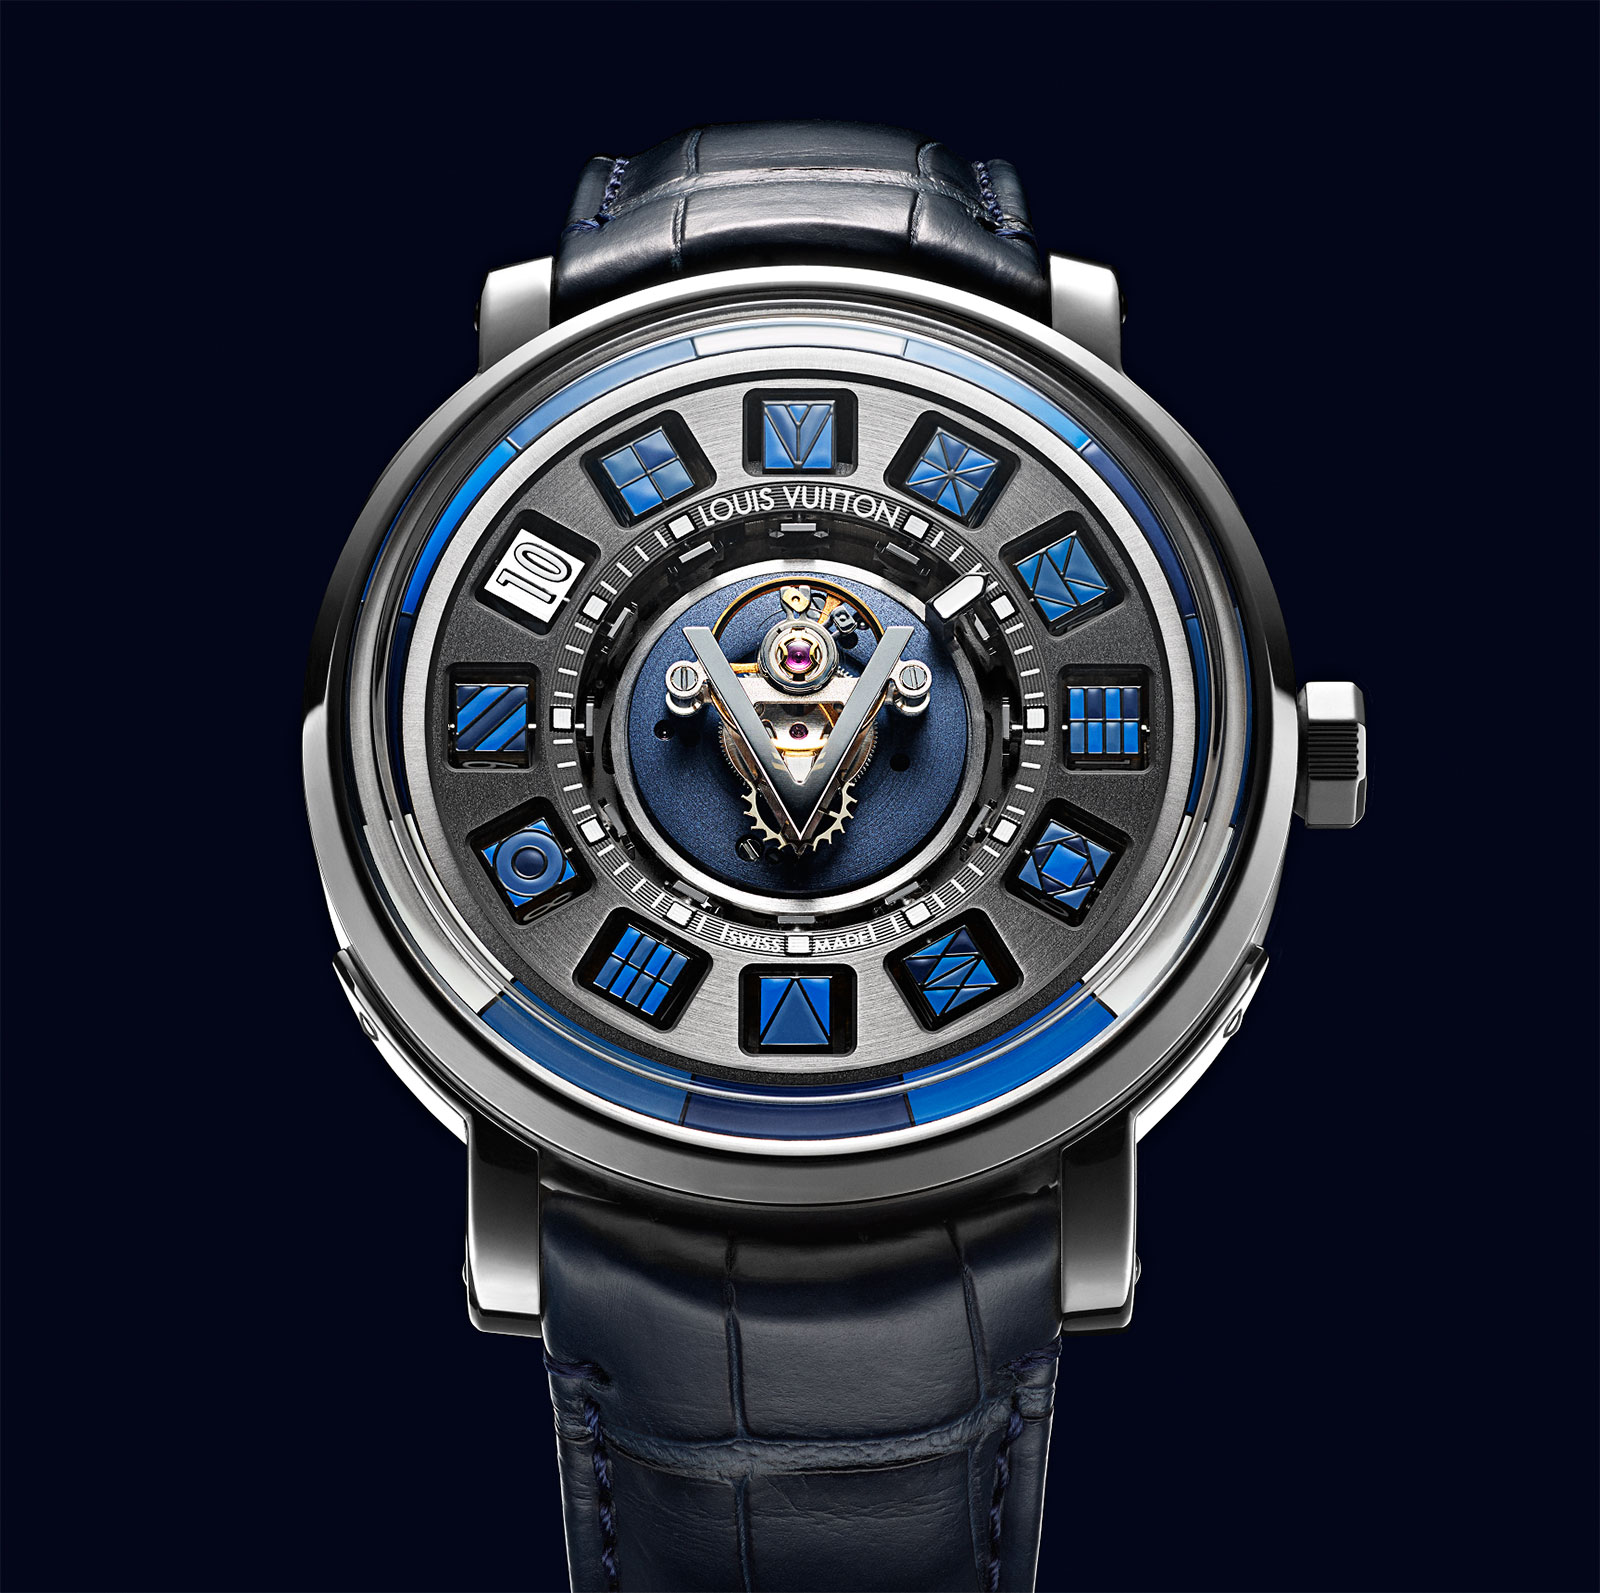 neue uhr louis vuitton escale blue spin time central tourbillon uhrforum. Black Bedroom Furniture Sets. Home Design Ideas